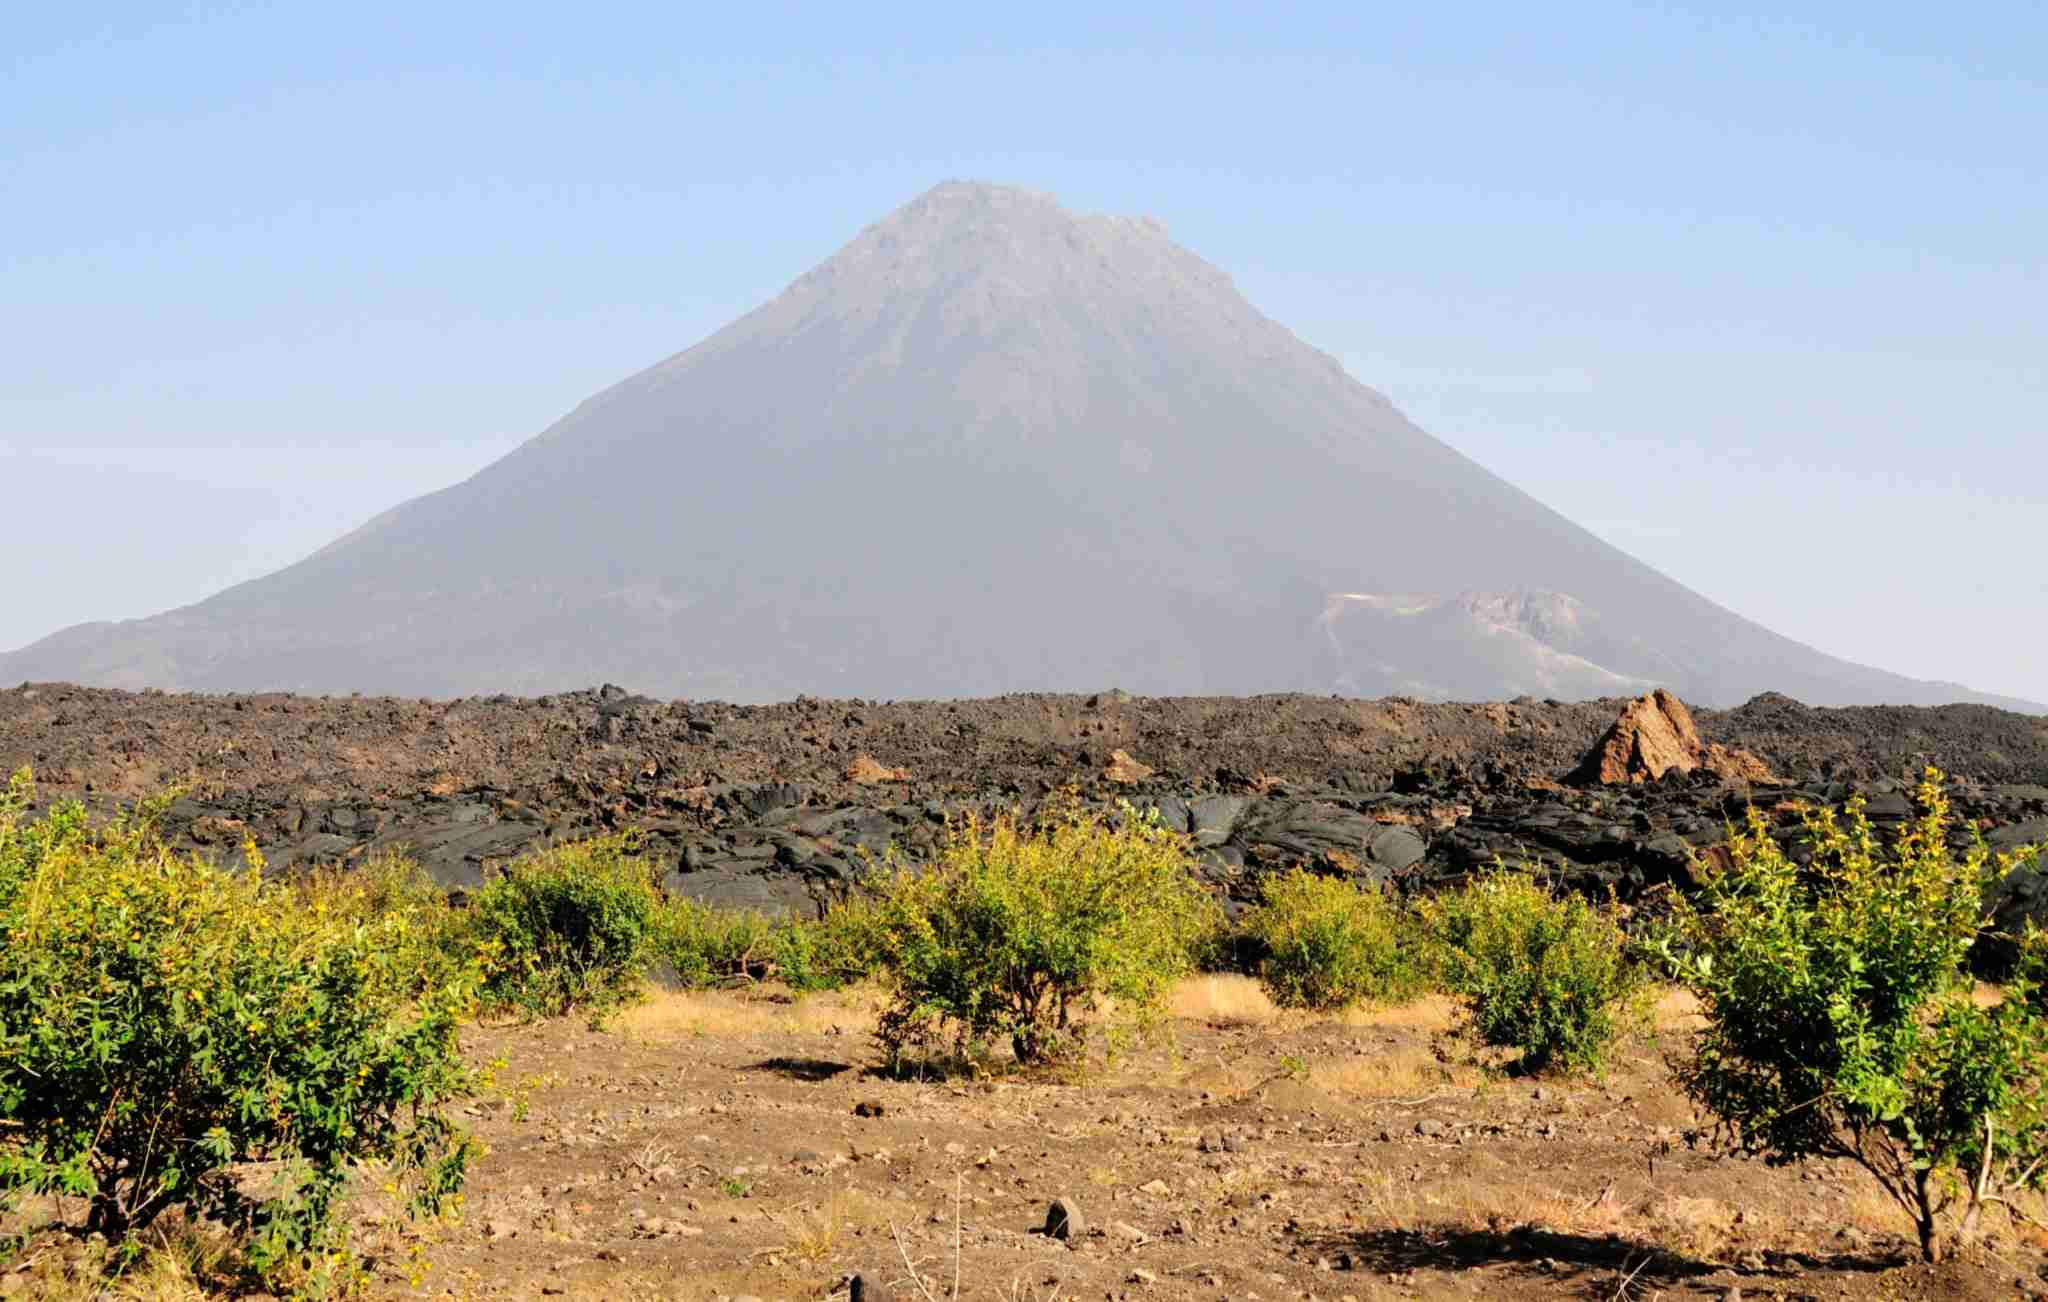 """Volcano """"Pico do Fogo"""" stands freely above the burned Lava fields and growing vegetation on the island of Fogo, Cabo Verde (Photo by Raularosa/Getty Images)"""